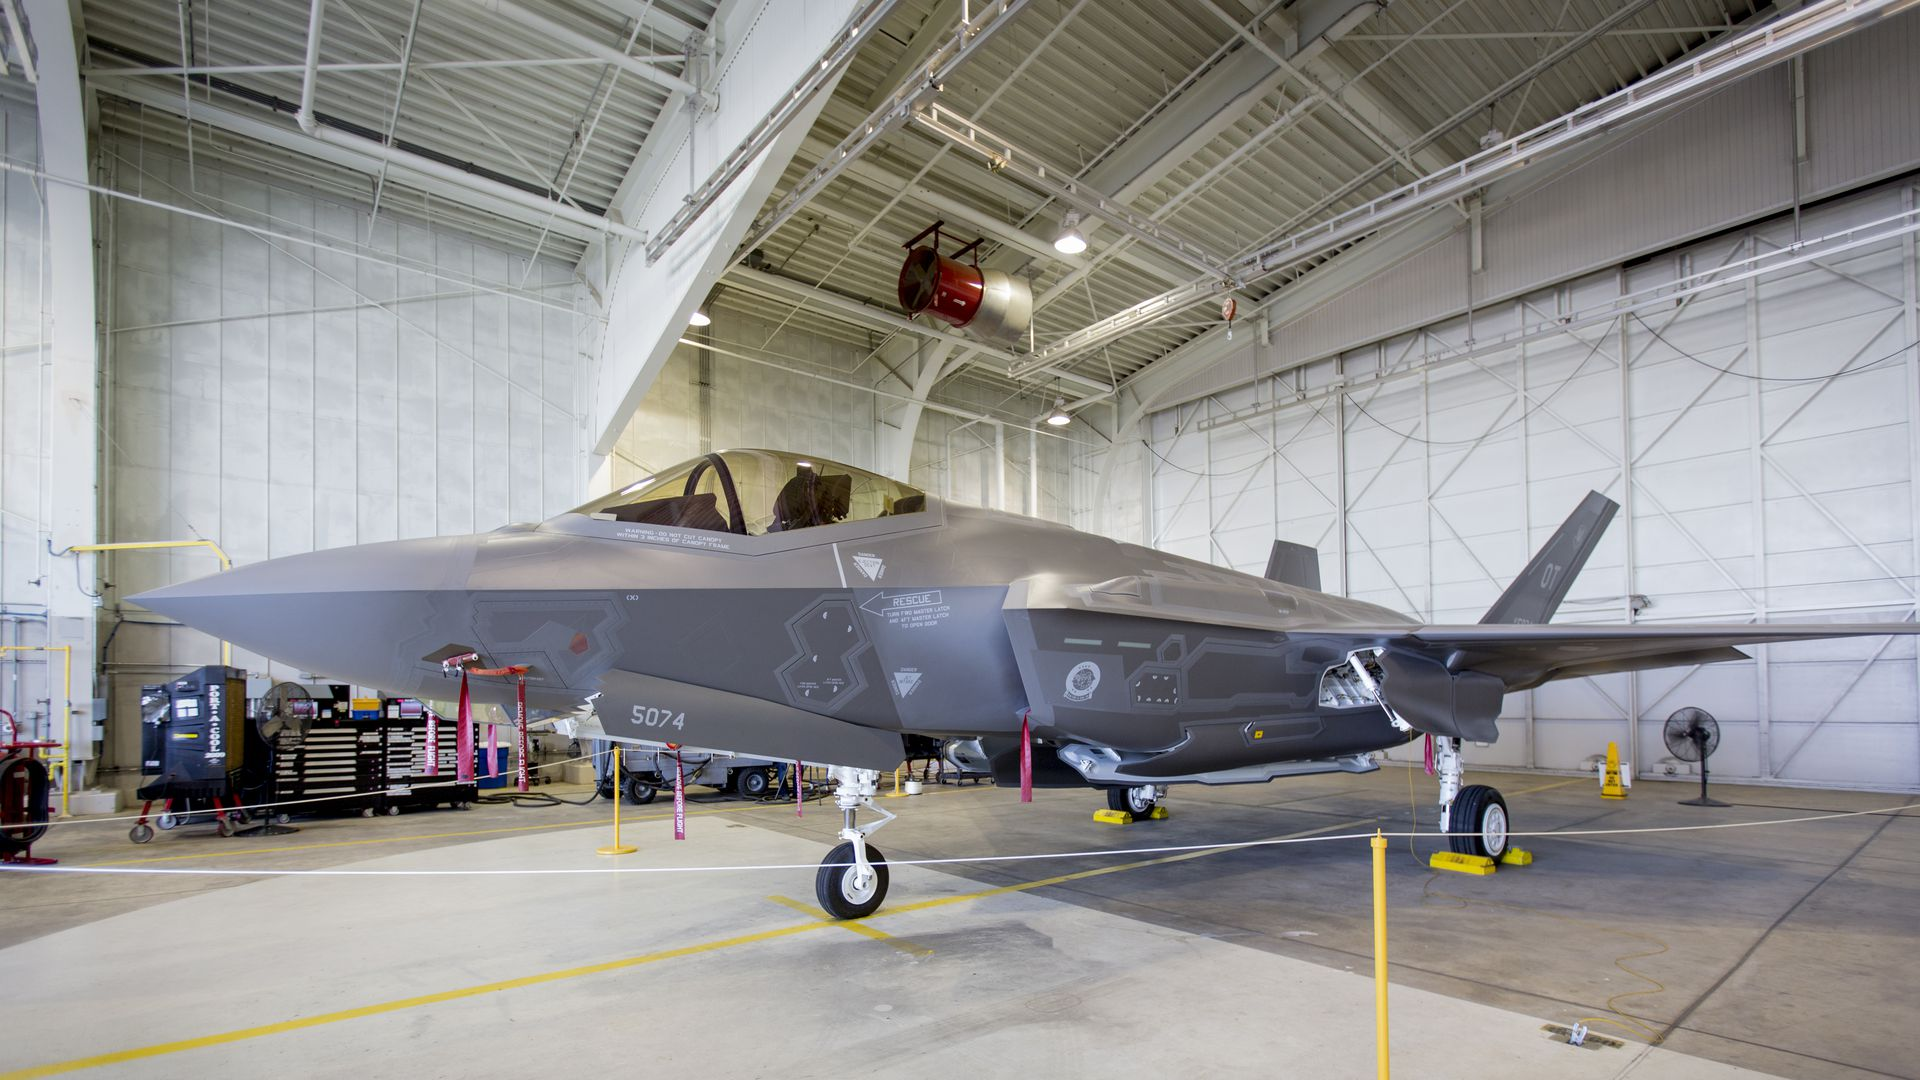 The U.S. has halted delivery of F-35 fighter jet parts to Turkey.